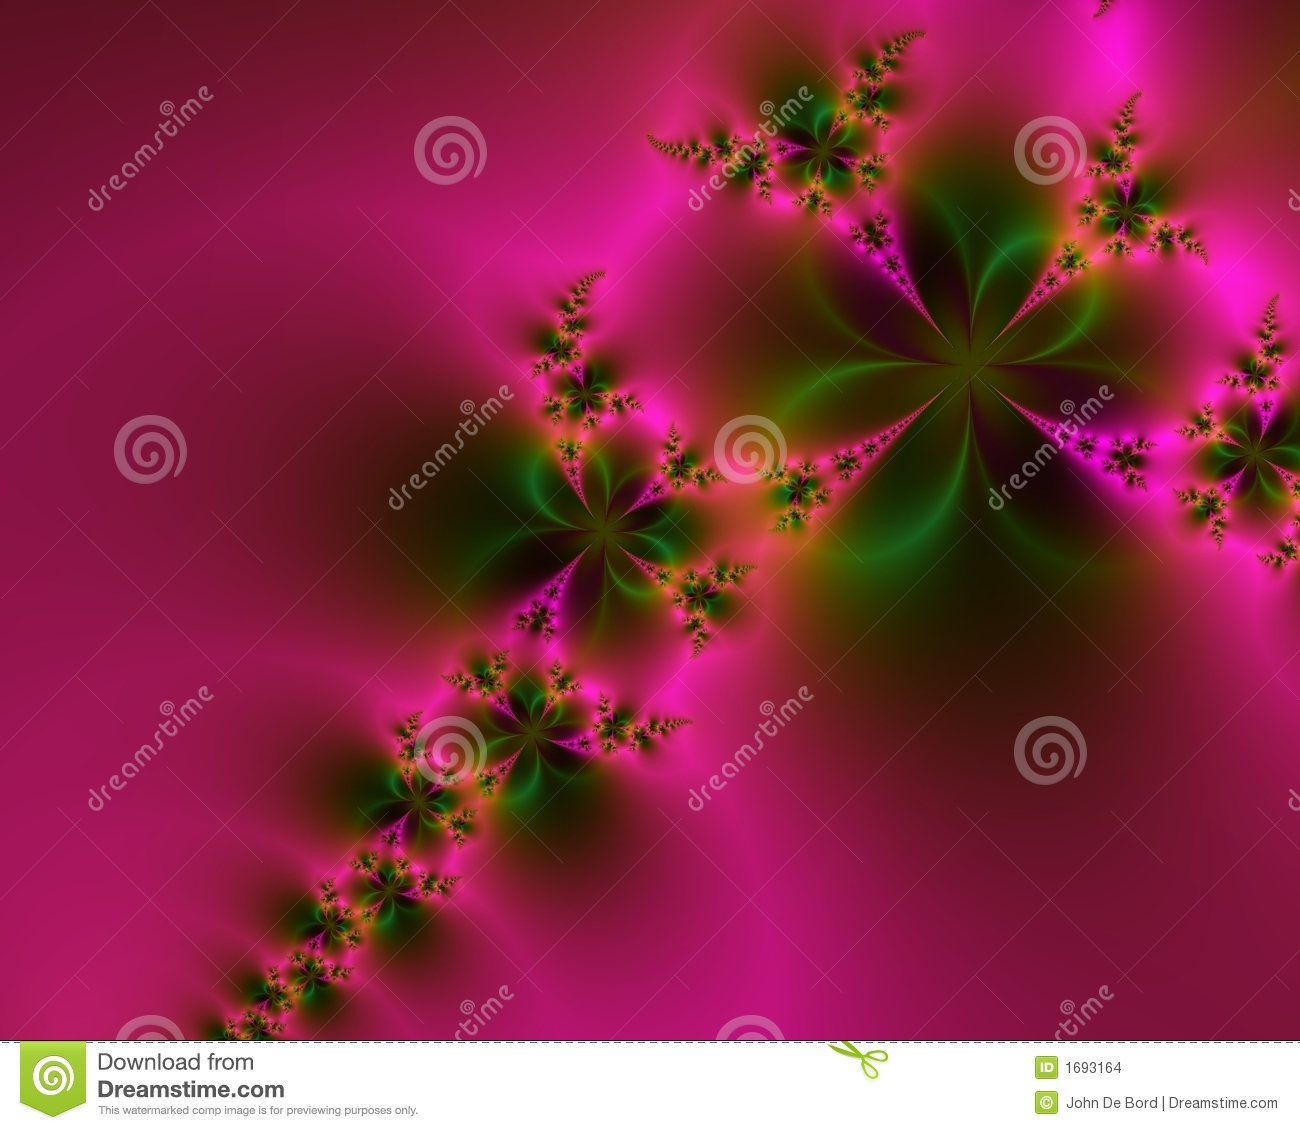 Romantic Pink and Green Abstract